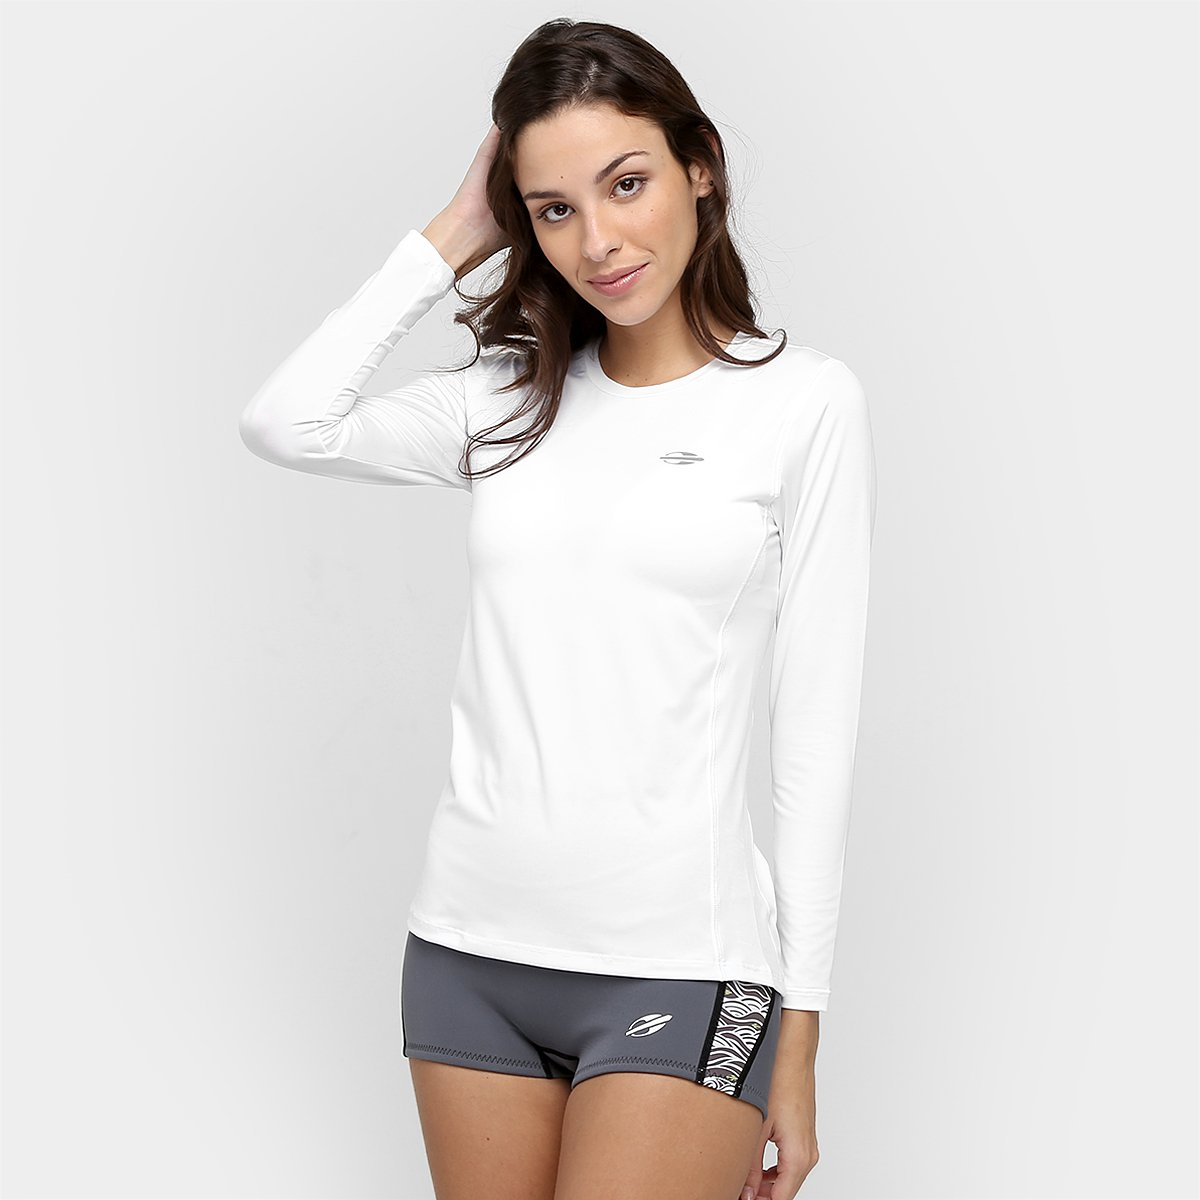 Camiseta Mormaii Body Fit M L - Compre Agora   Netshoes 1a7942bba7